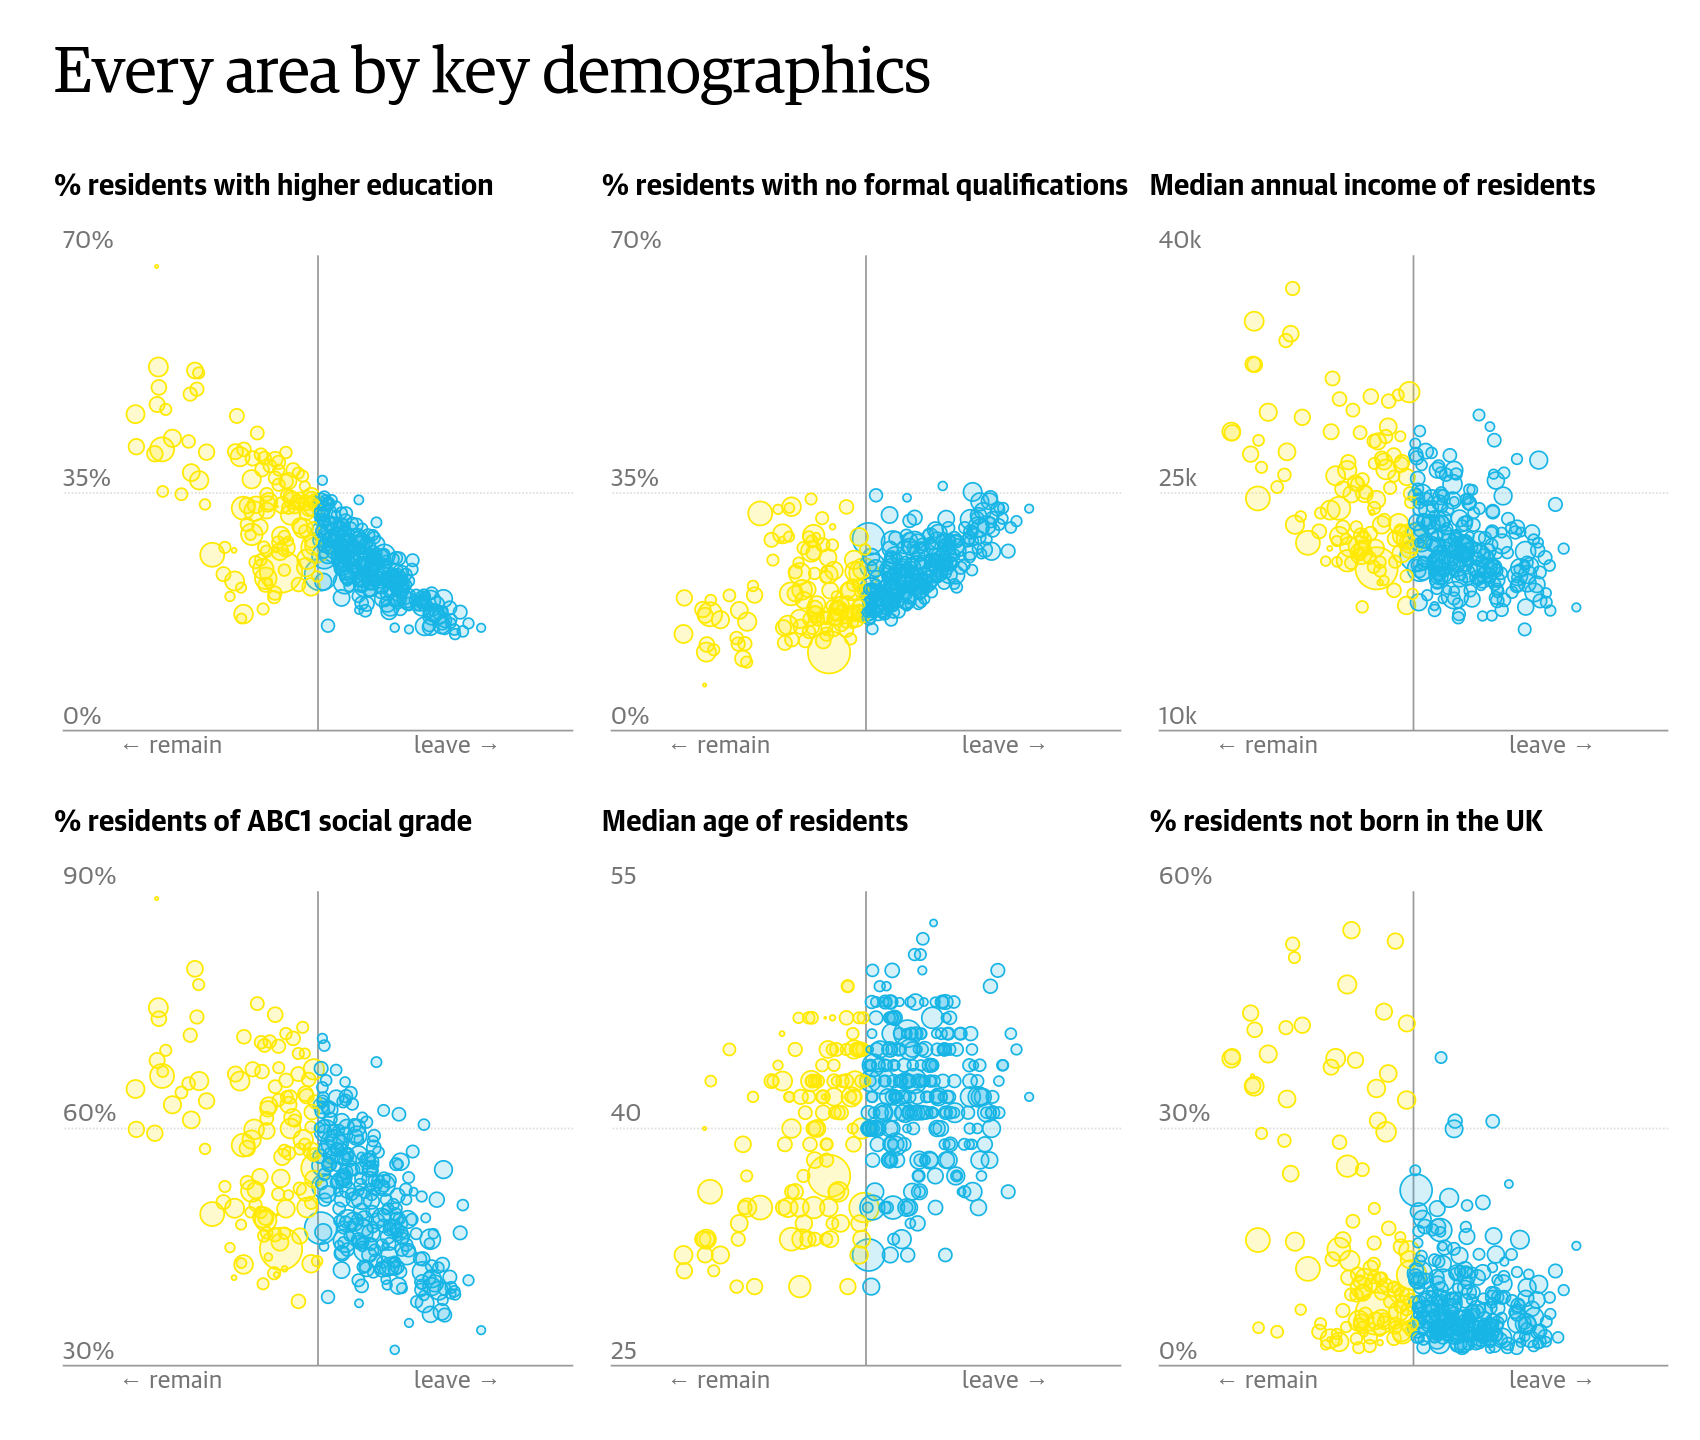 Brexit demographics from The Guardian